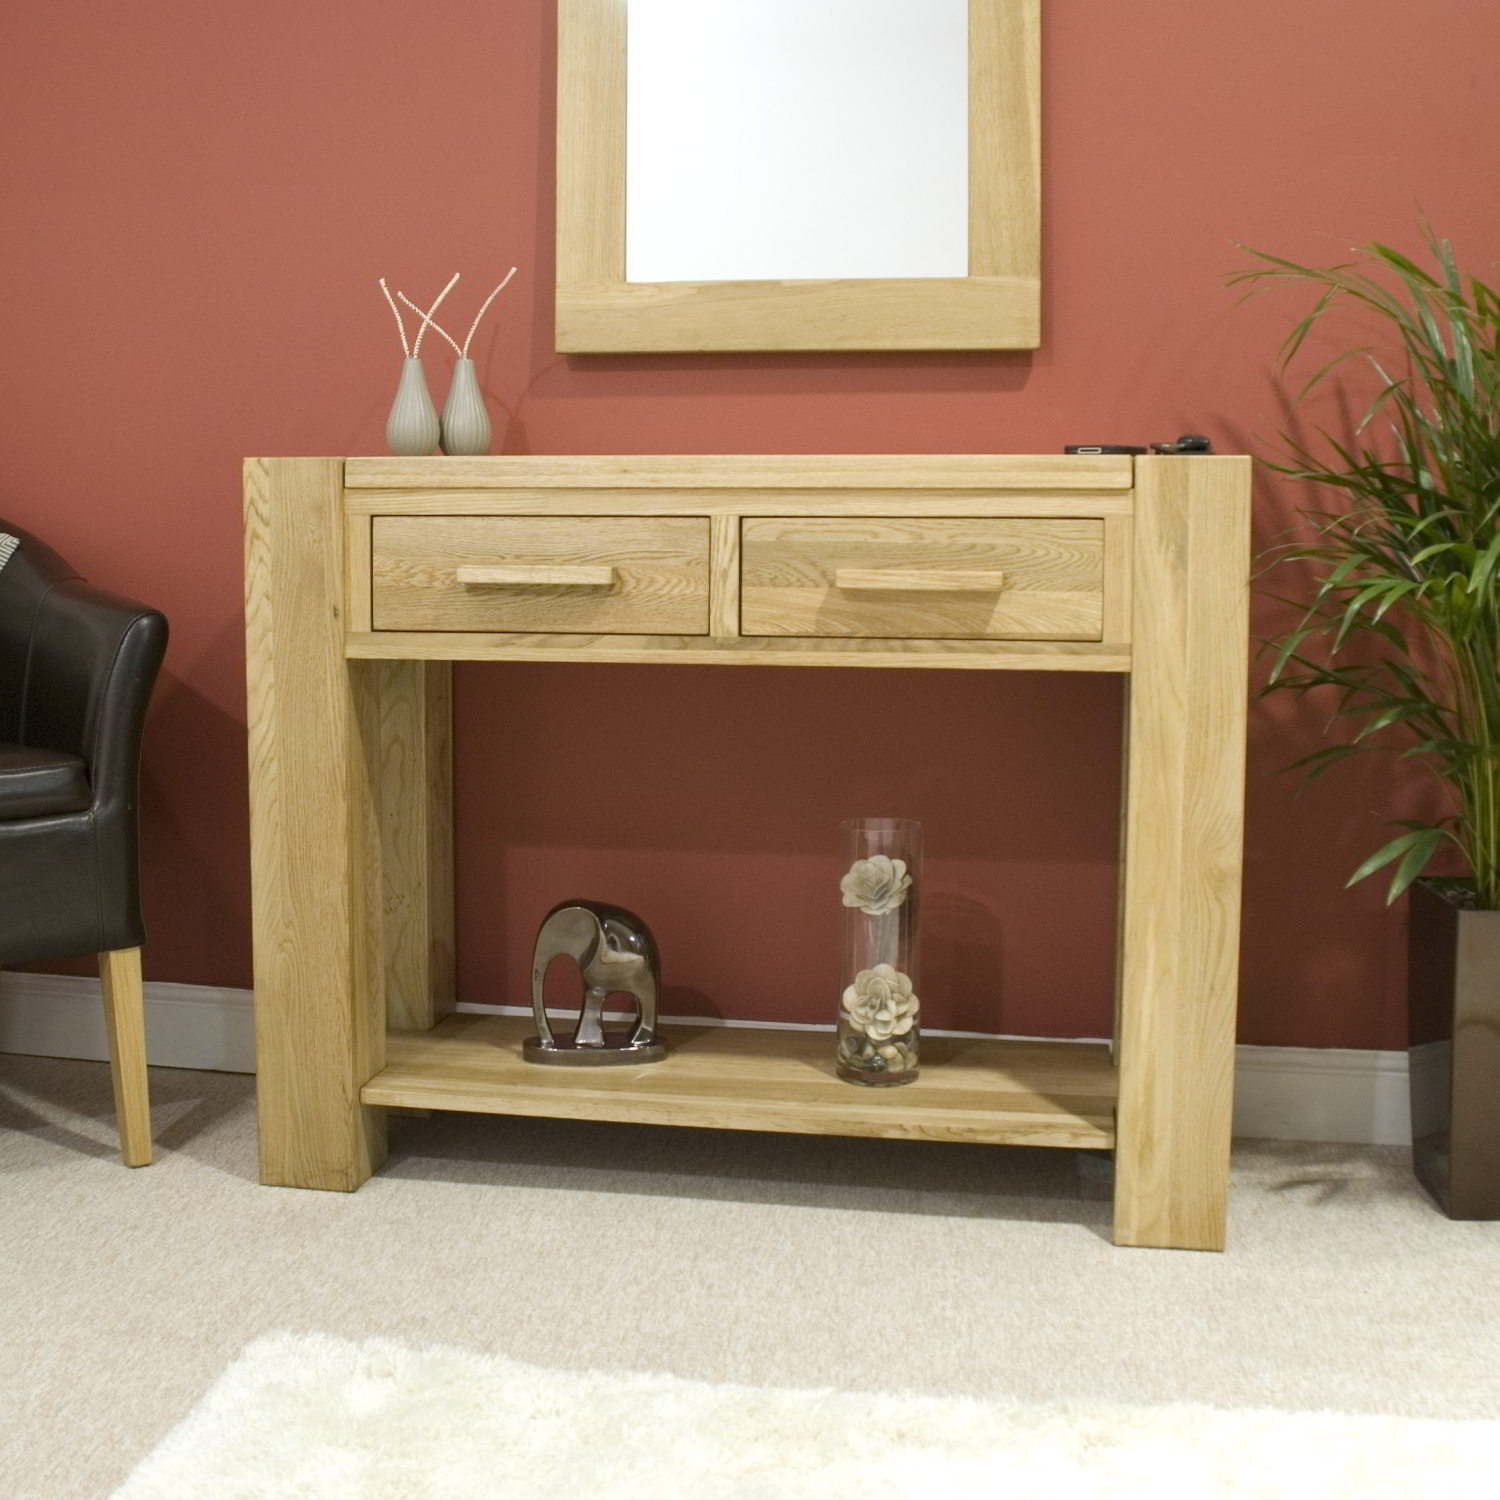 Pemberton Solid Modern Oak Hallway Furniture Console Hall Table